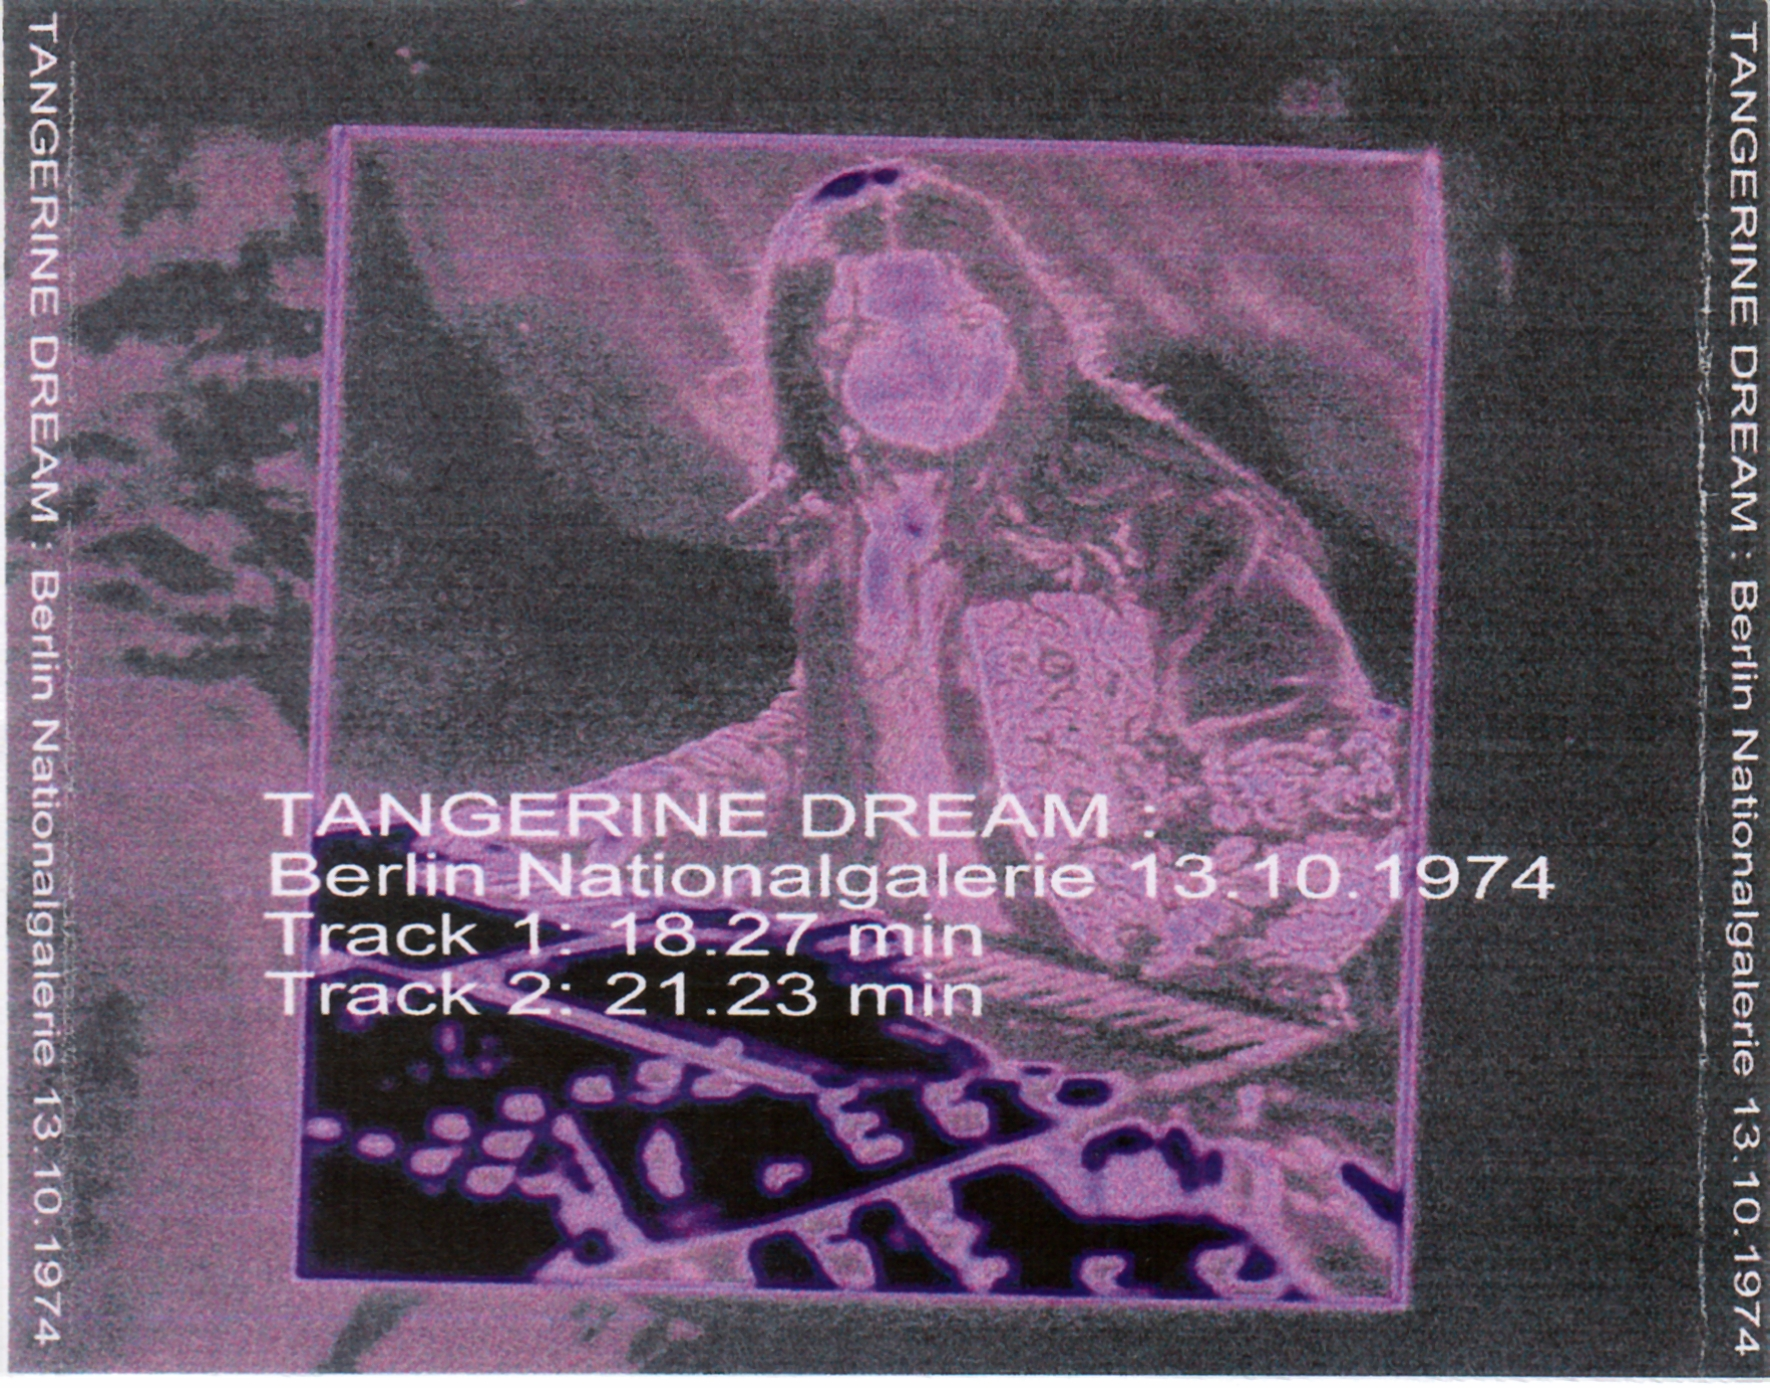 TangerineDream1974-10-13NationalgalerieBerlinGermany (1).jpg